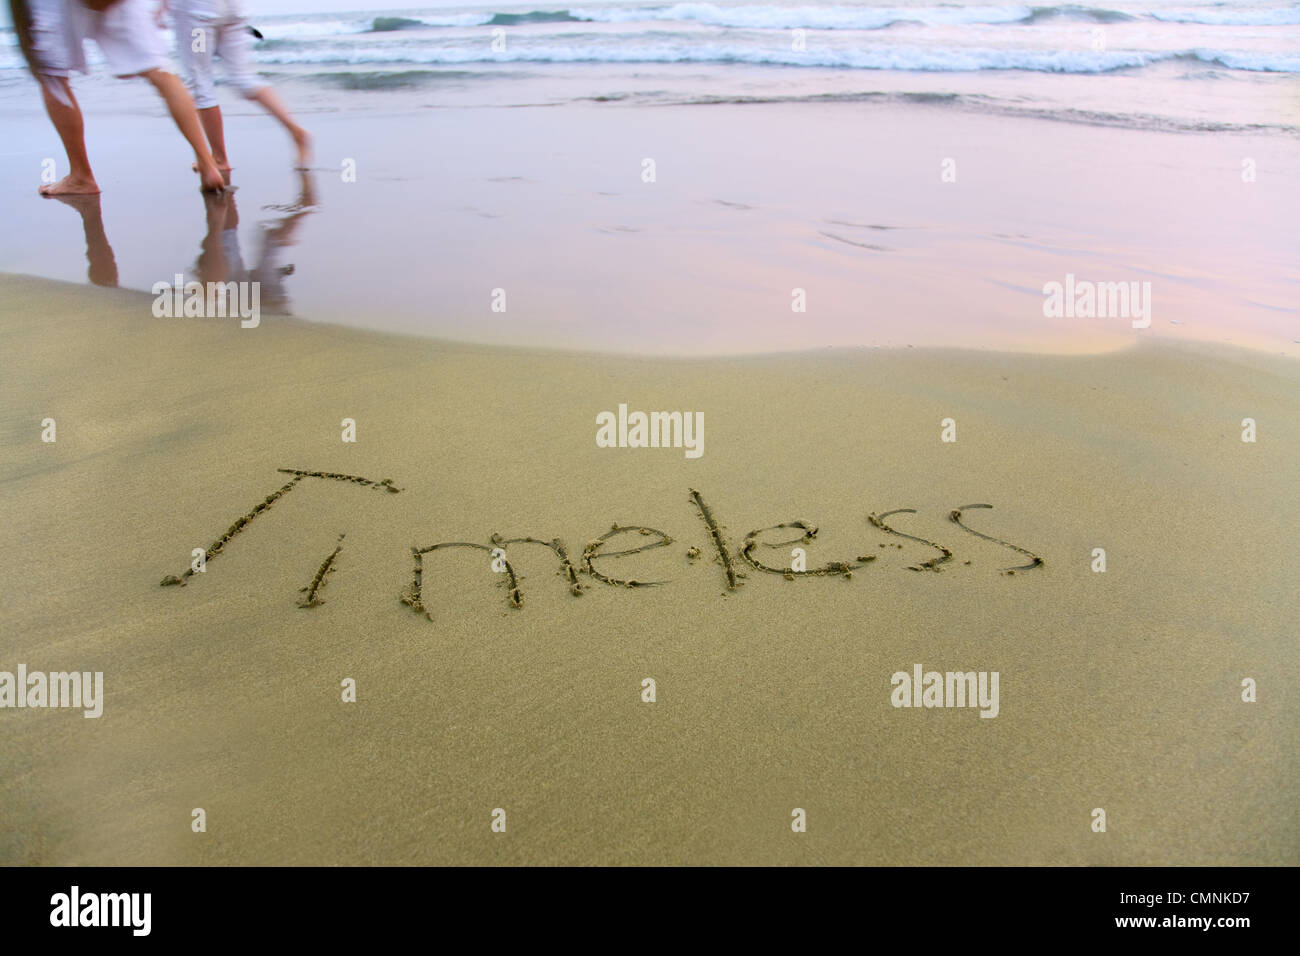 Handwriting word Timeless written on the sand - Stock Image